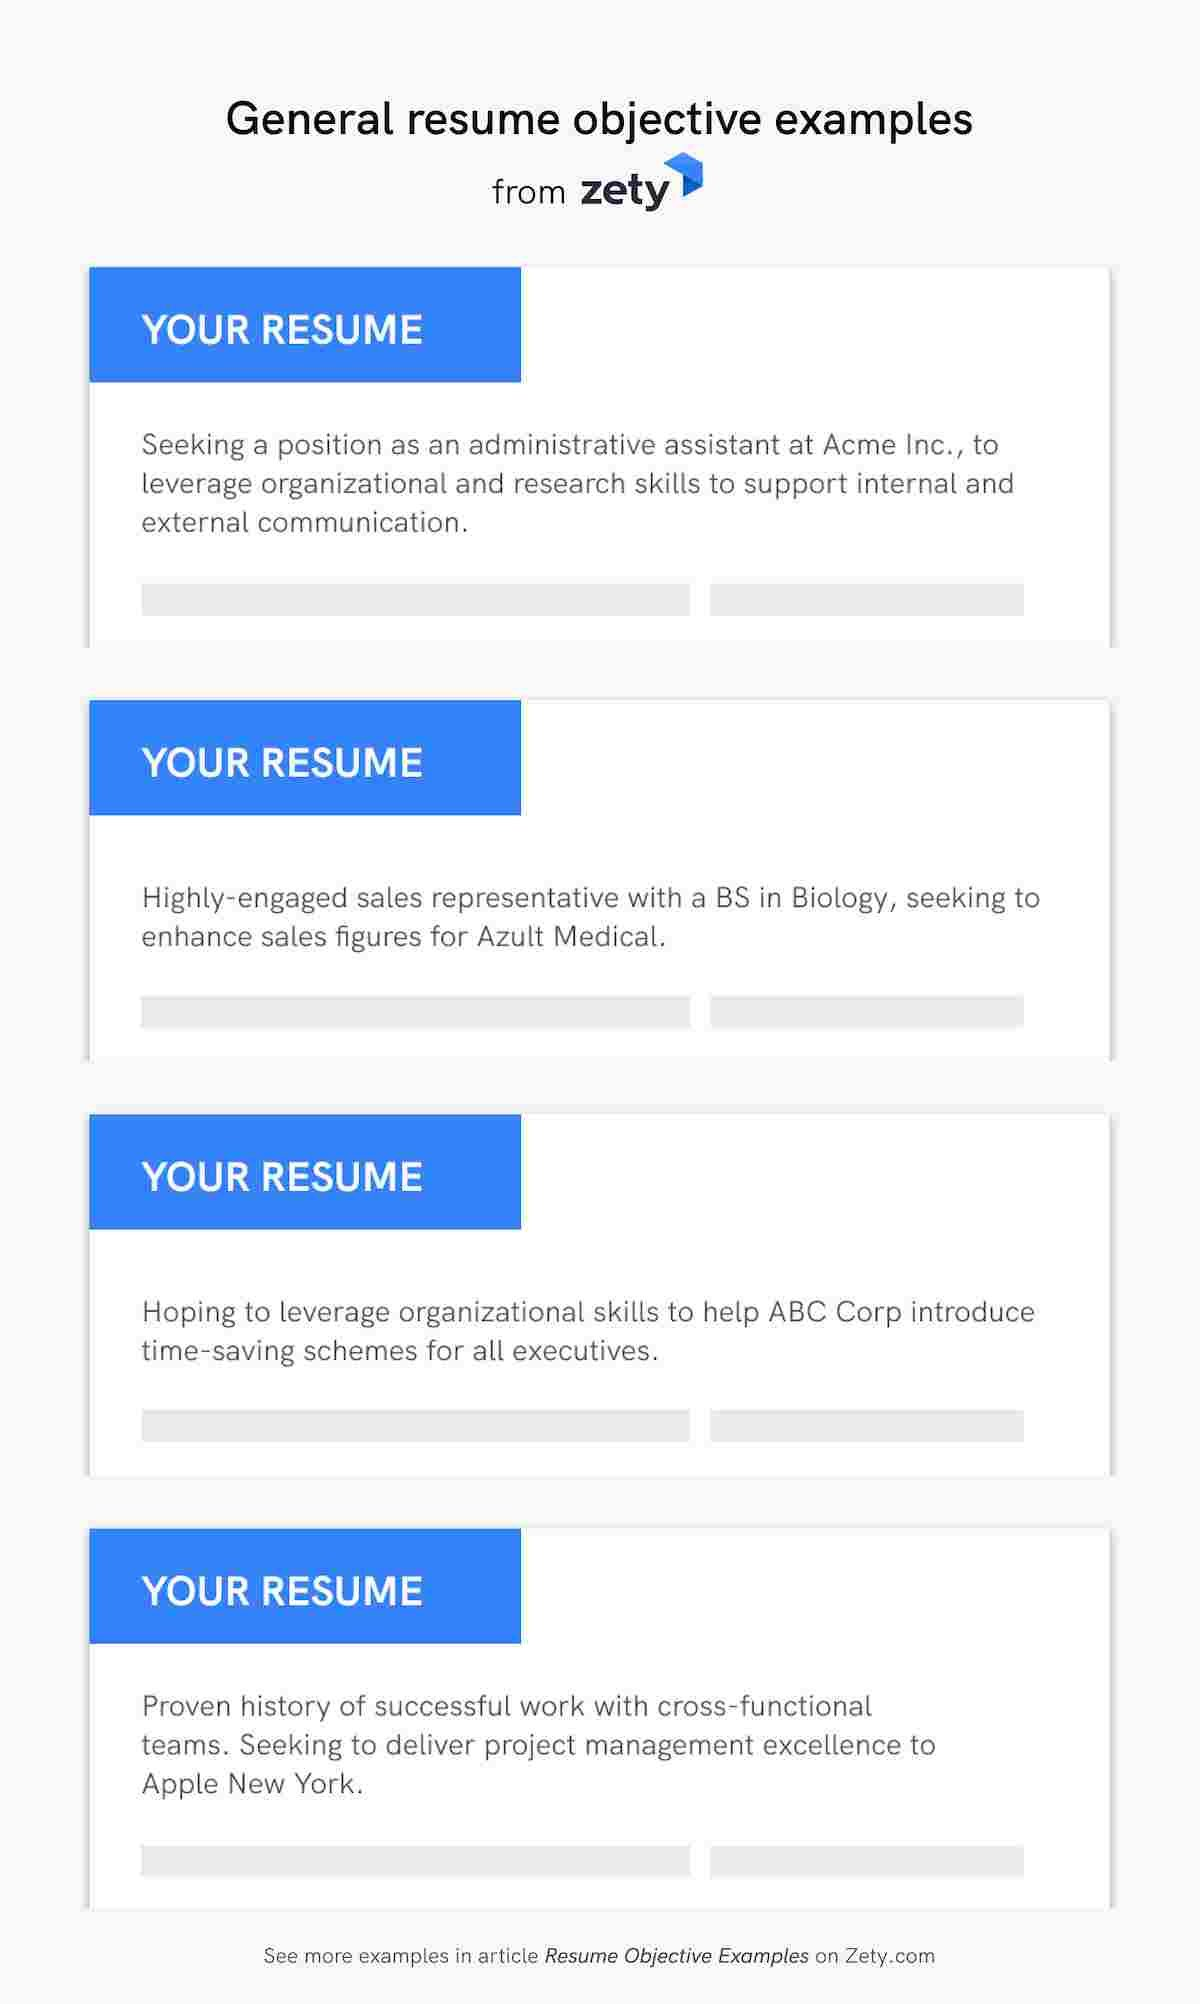 resume objective examples career objectives for all jobs section of general personal Resume Objective Section Of Resume